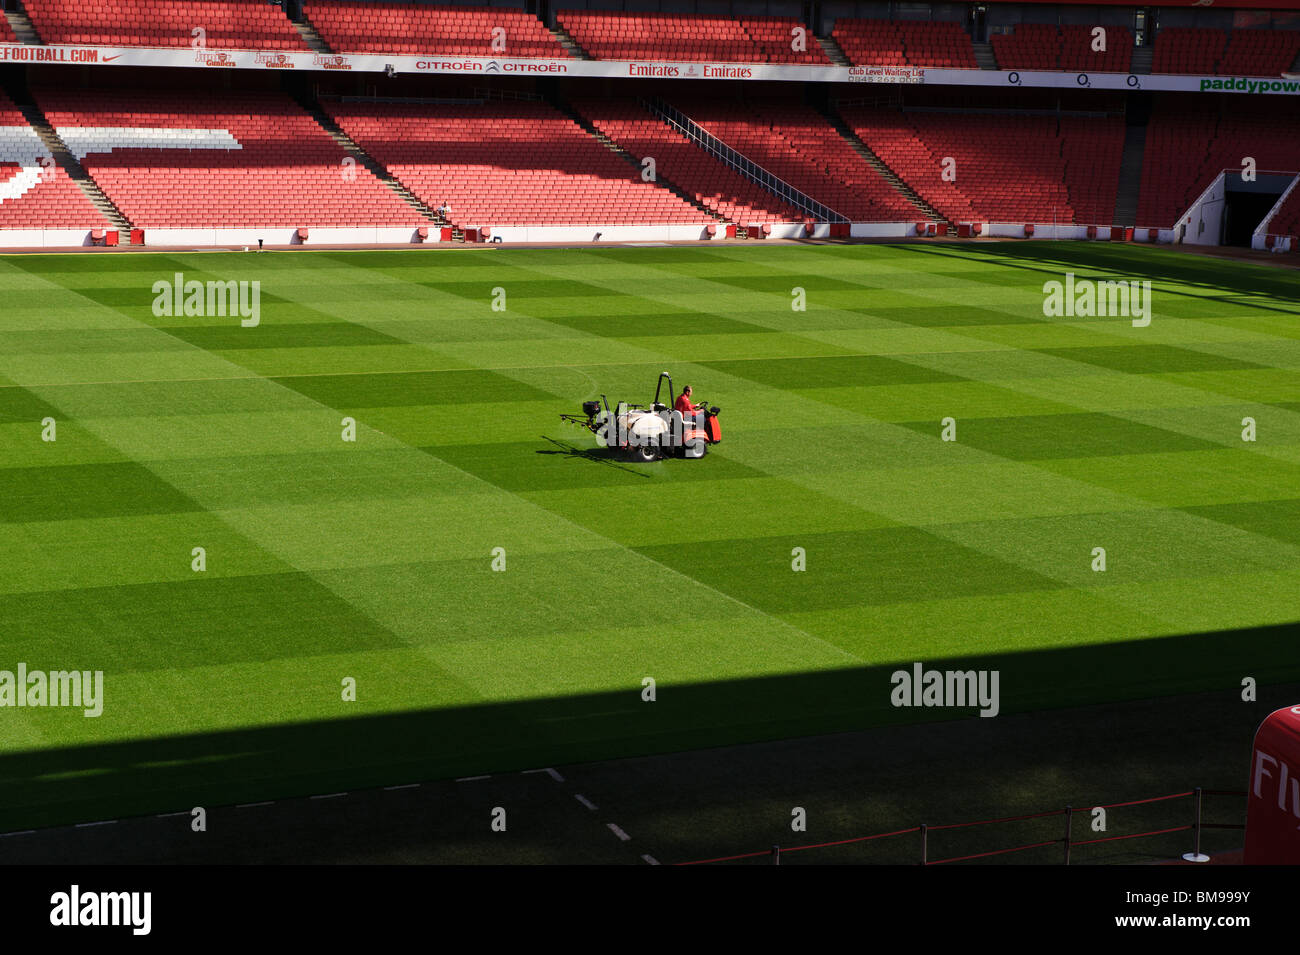 The Emirates Stadium, Arsenal football club, English Premier football soccer league. The pitch is being watered. - Stock Image